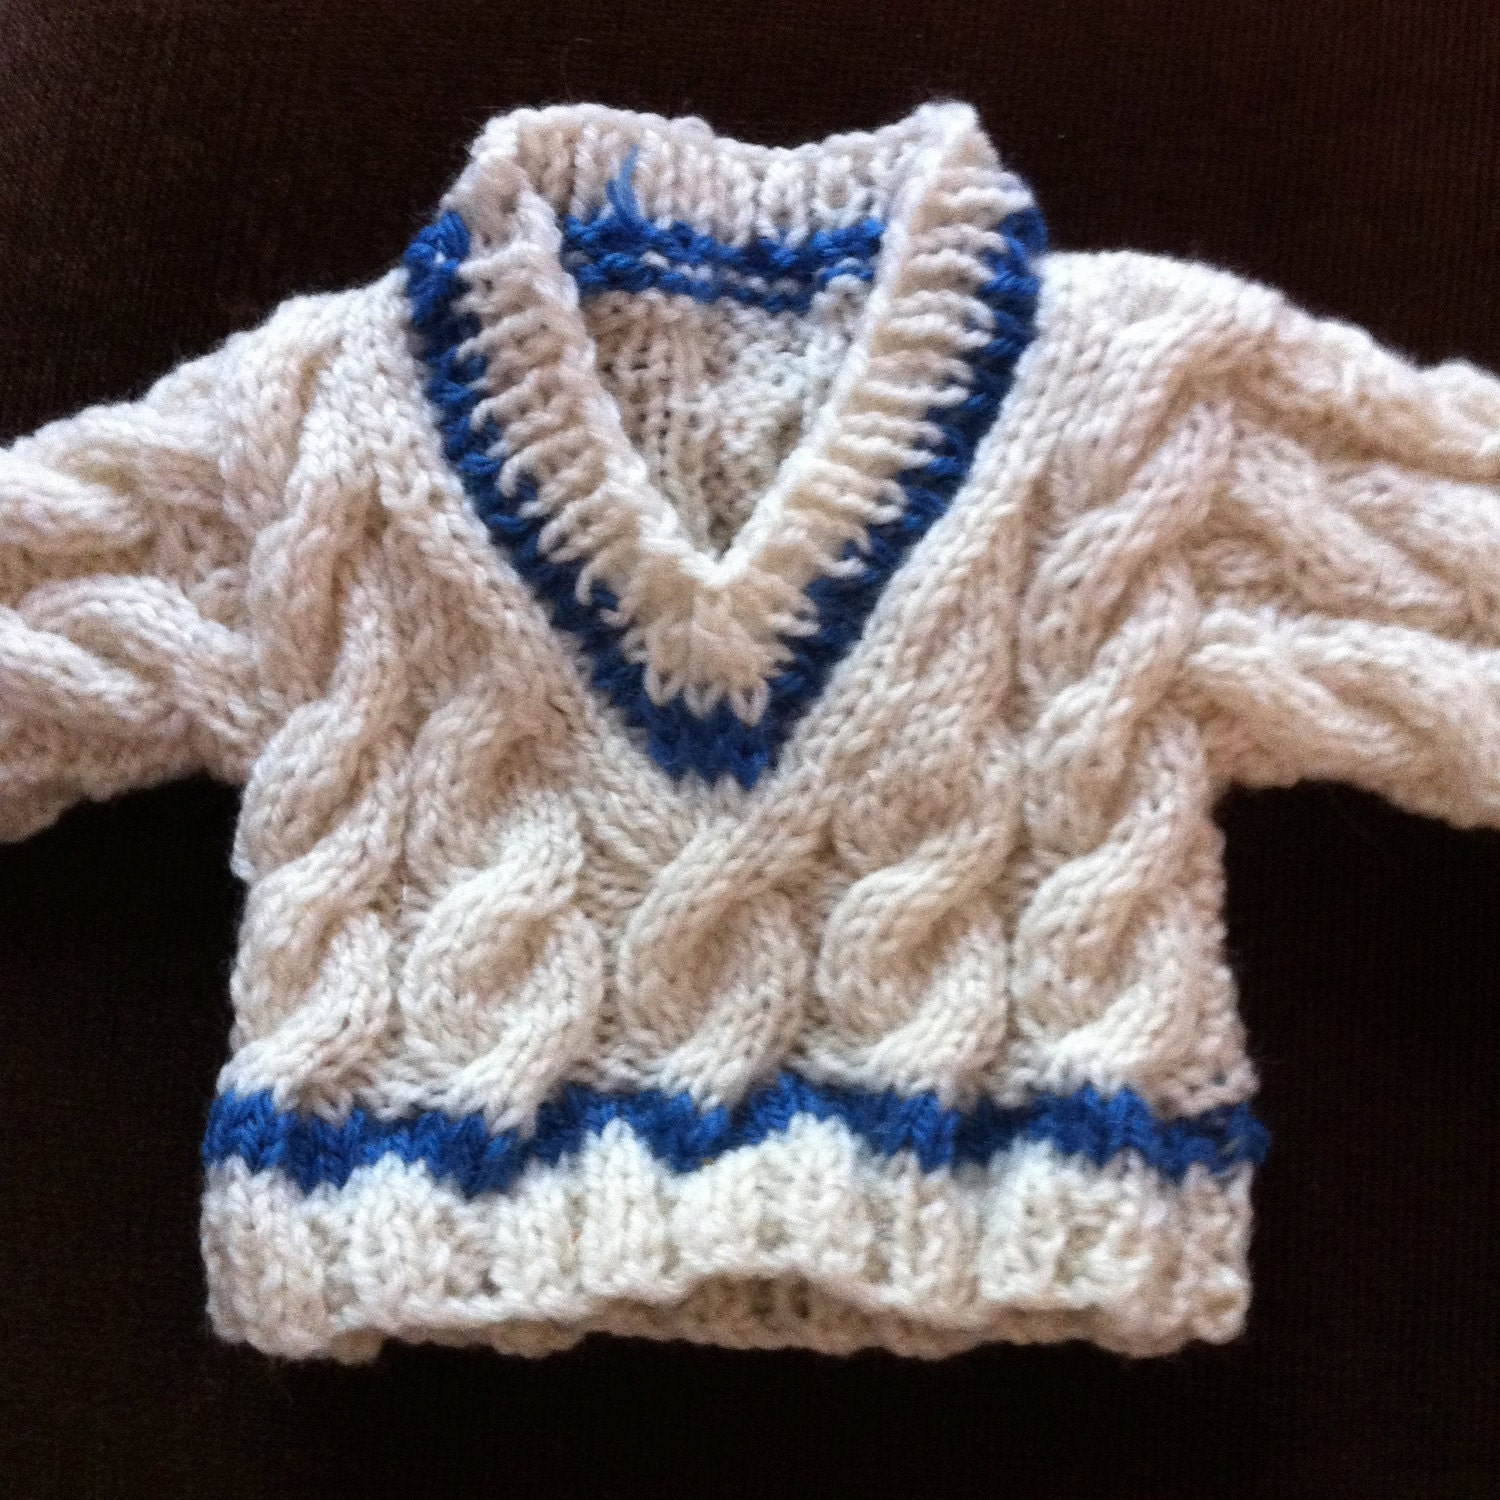 Jumper Knitting Pattern For A Teddy Bear : Hand Knitted Cabled Cricket Jumper to fit Build a Bear animals